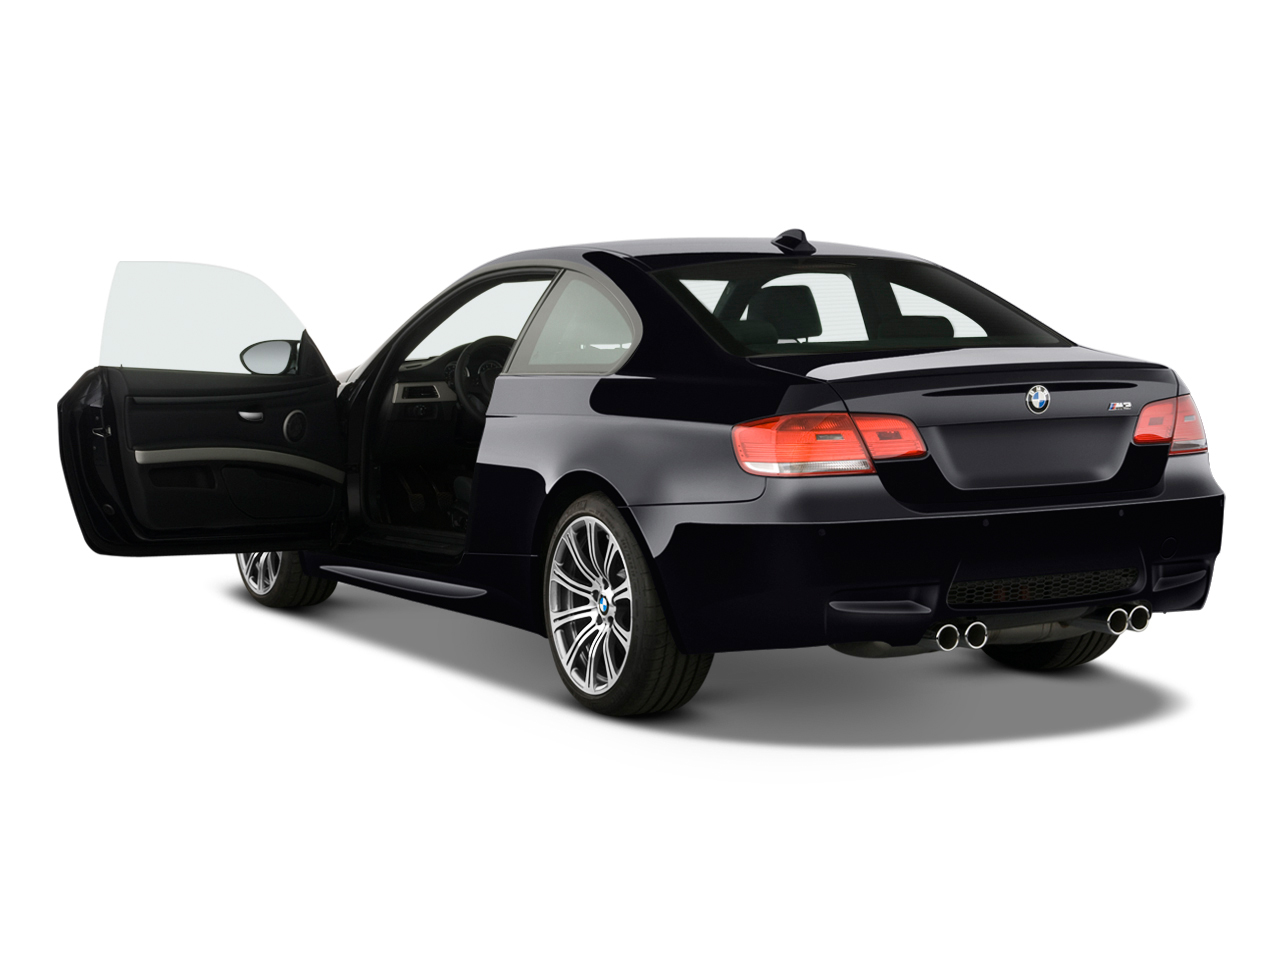 2009 BMW 335i Coupe  BMW Luxury Sport Coupe Review  Automobile